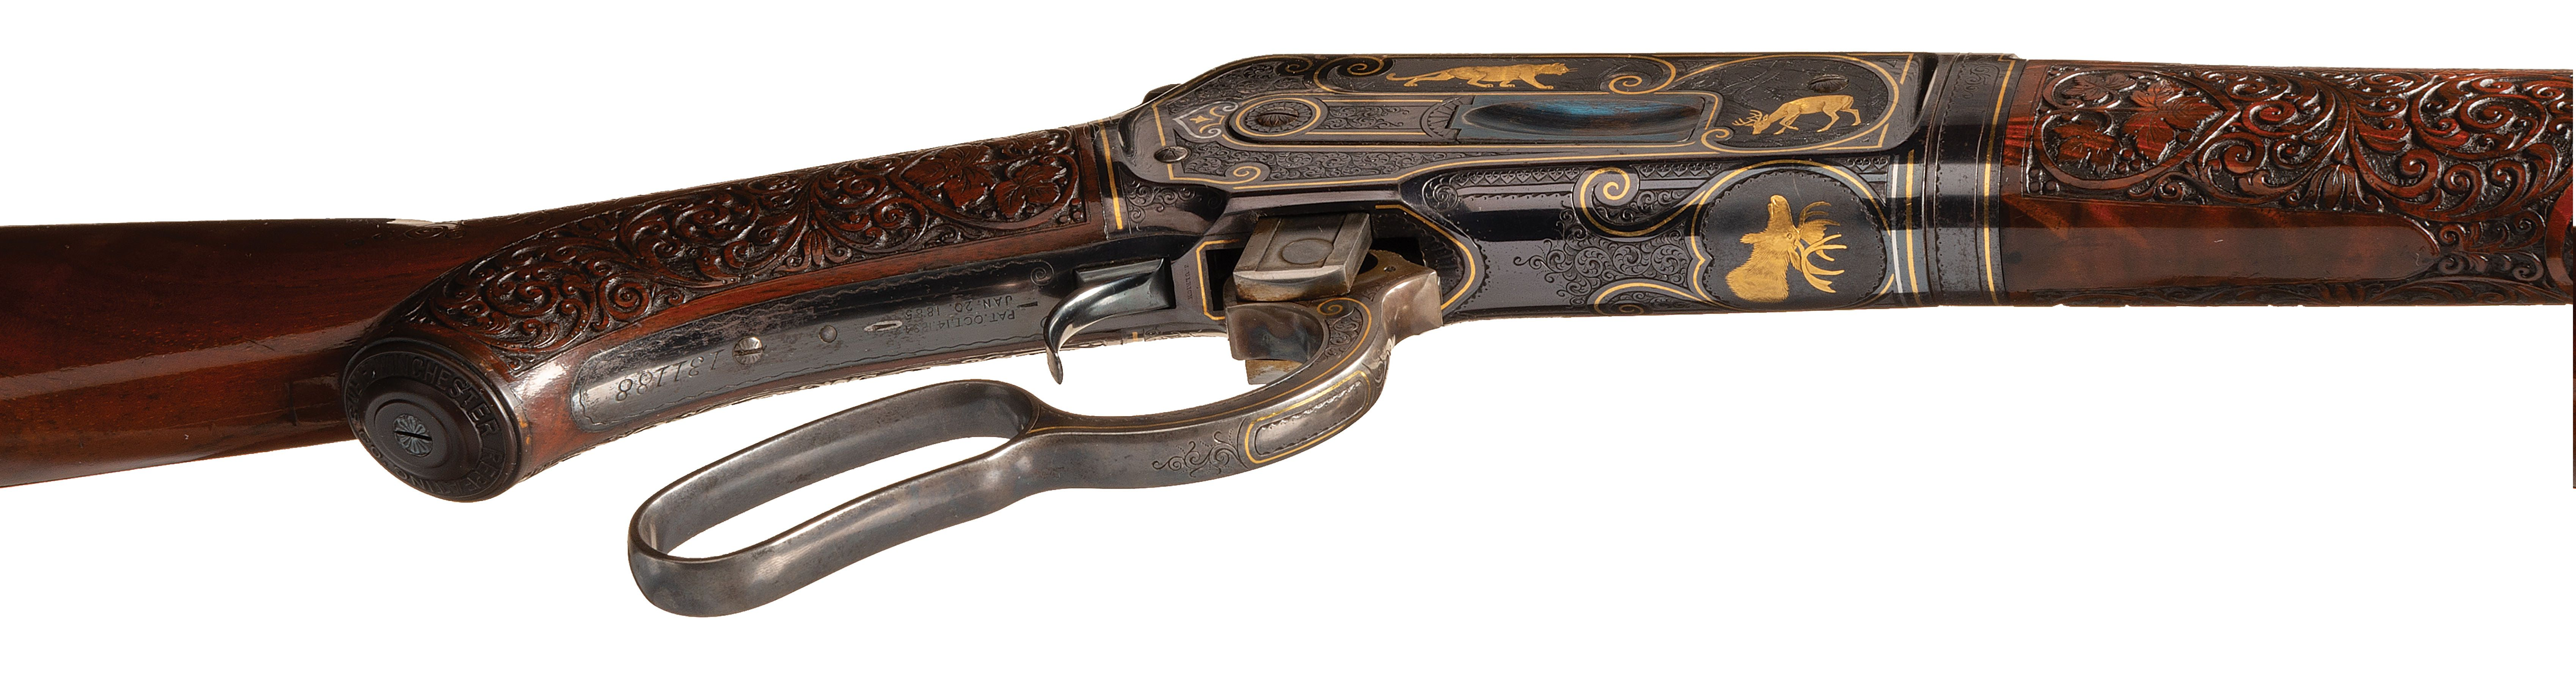 Winchester Model 1886 Ulrich engraved rifle